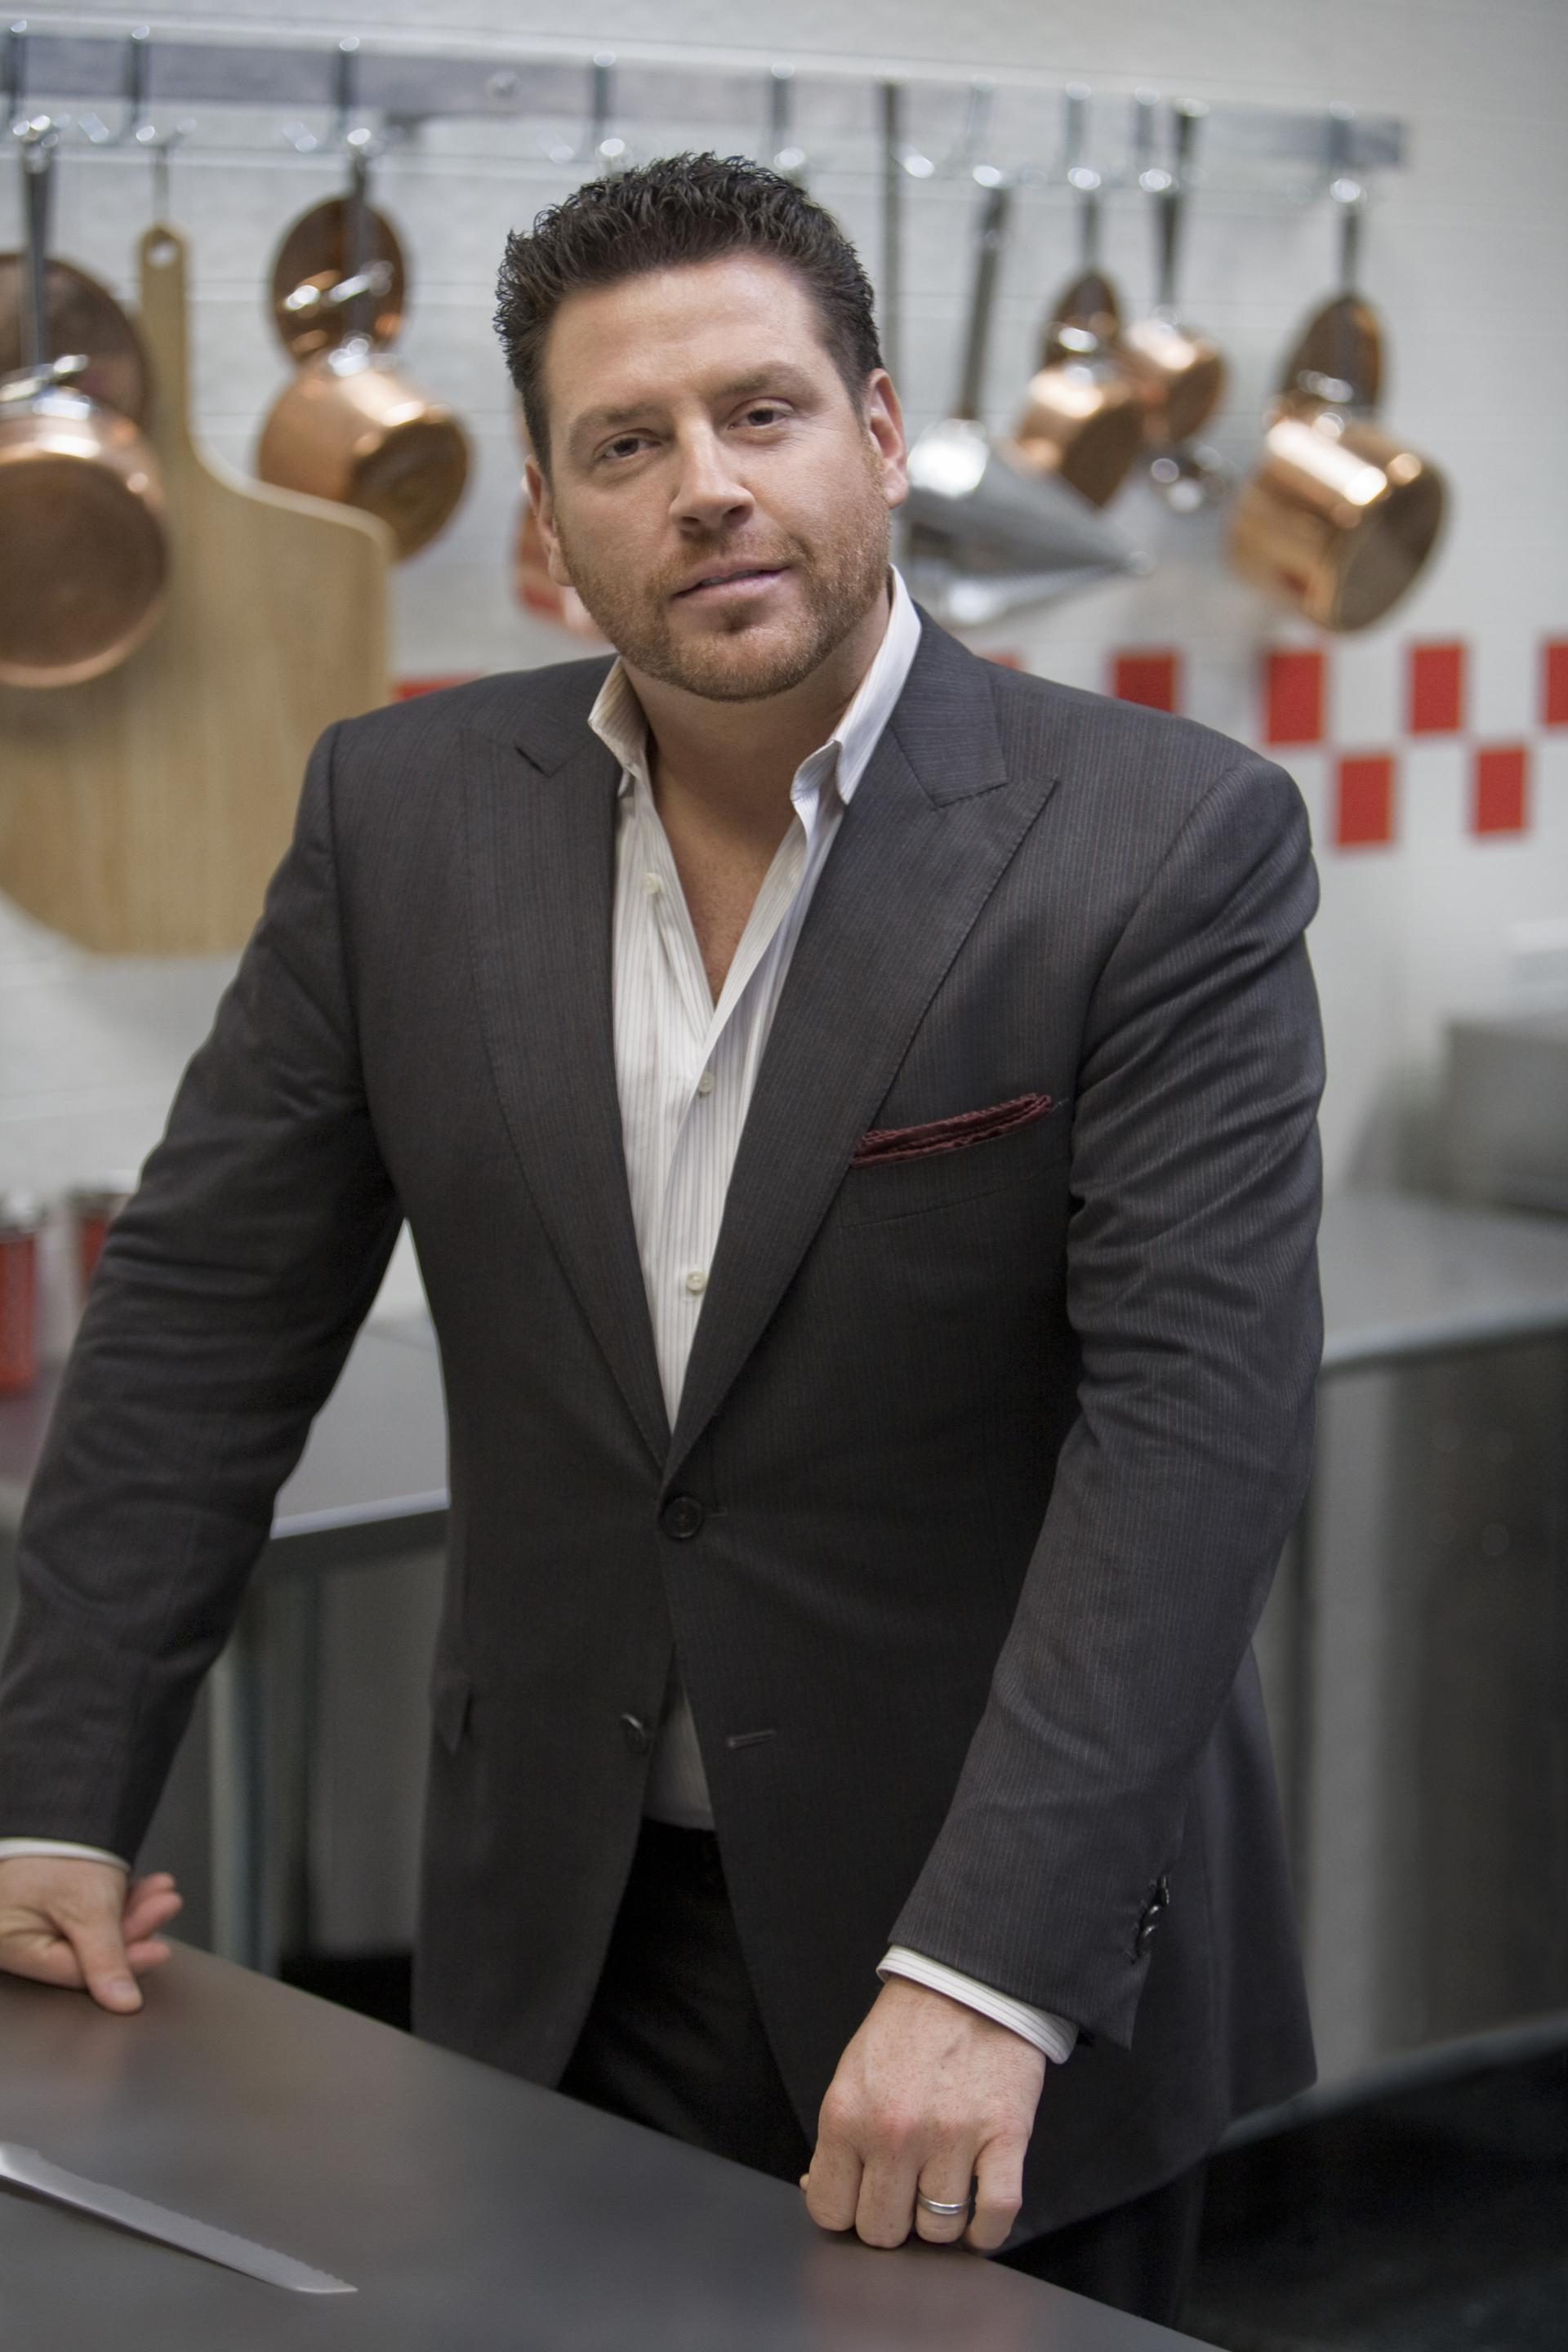 Scott Conant: Food Network Show Host for 24 Hour Restaurant Battle